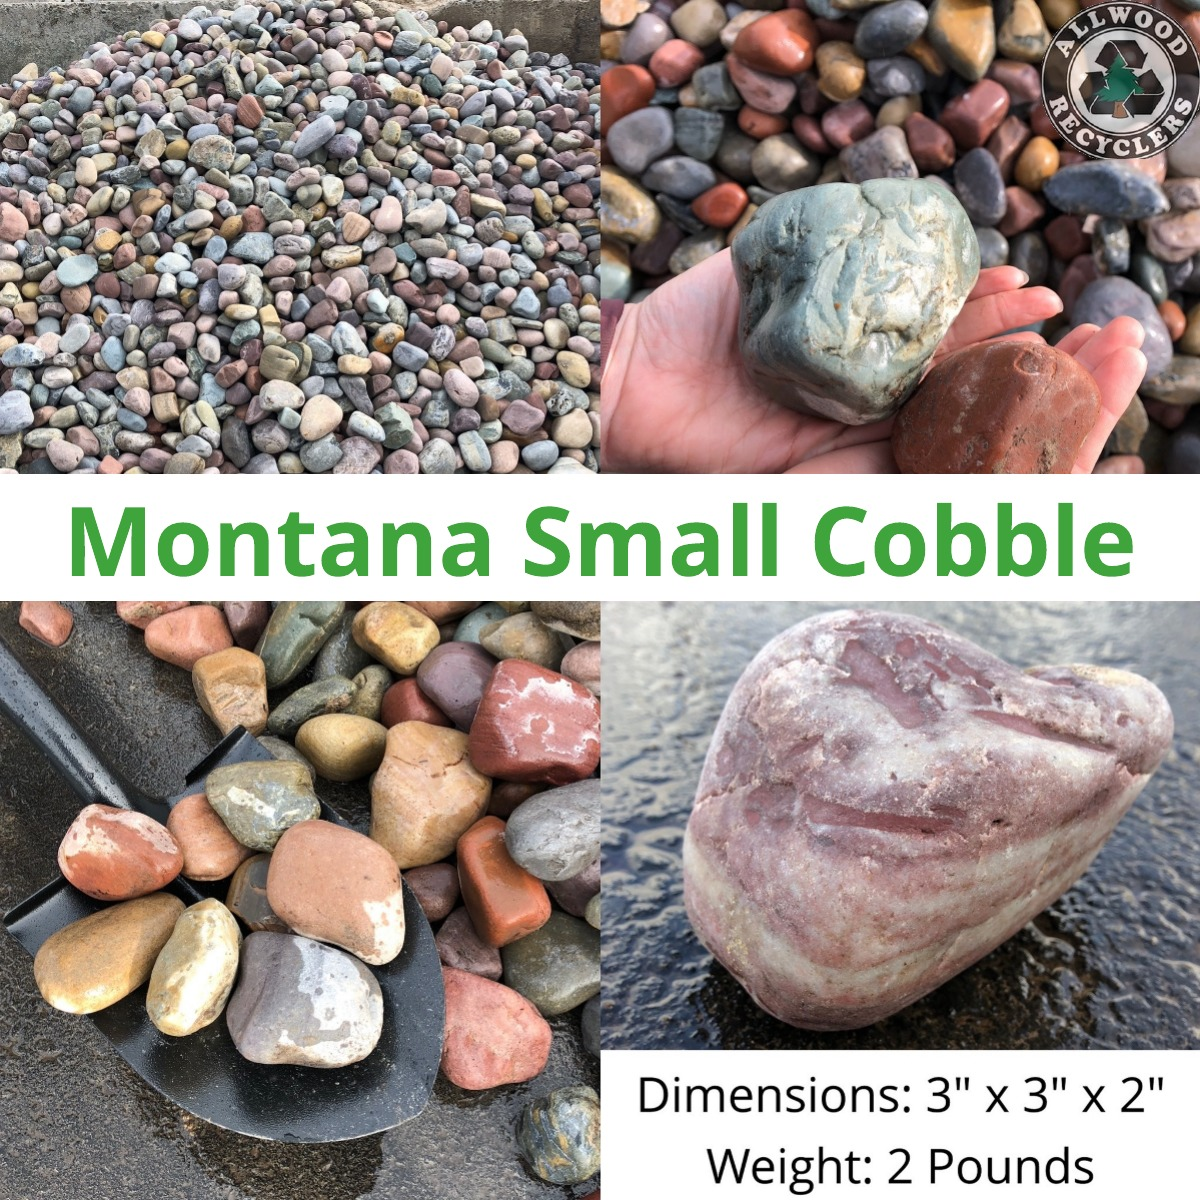 Montana Small Cobble